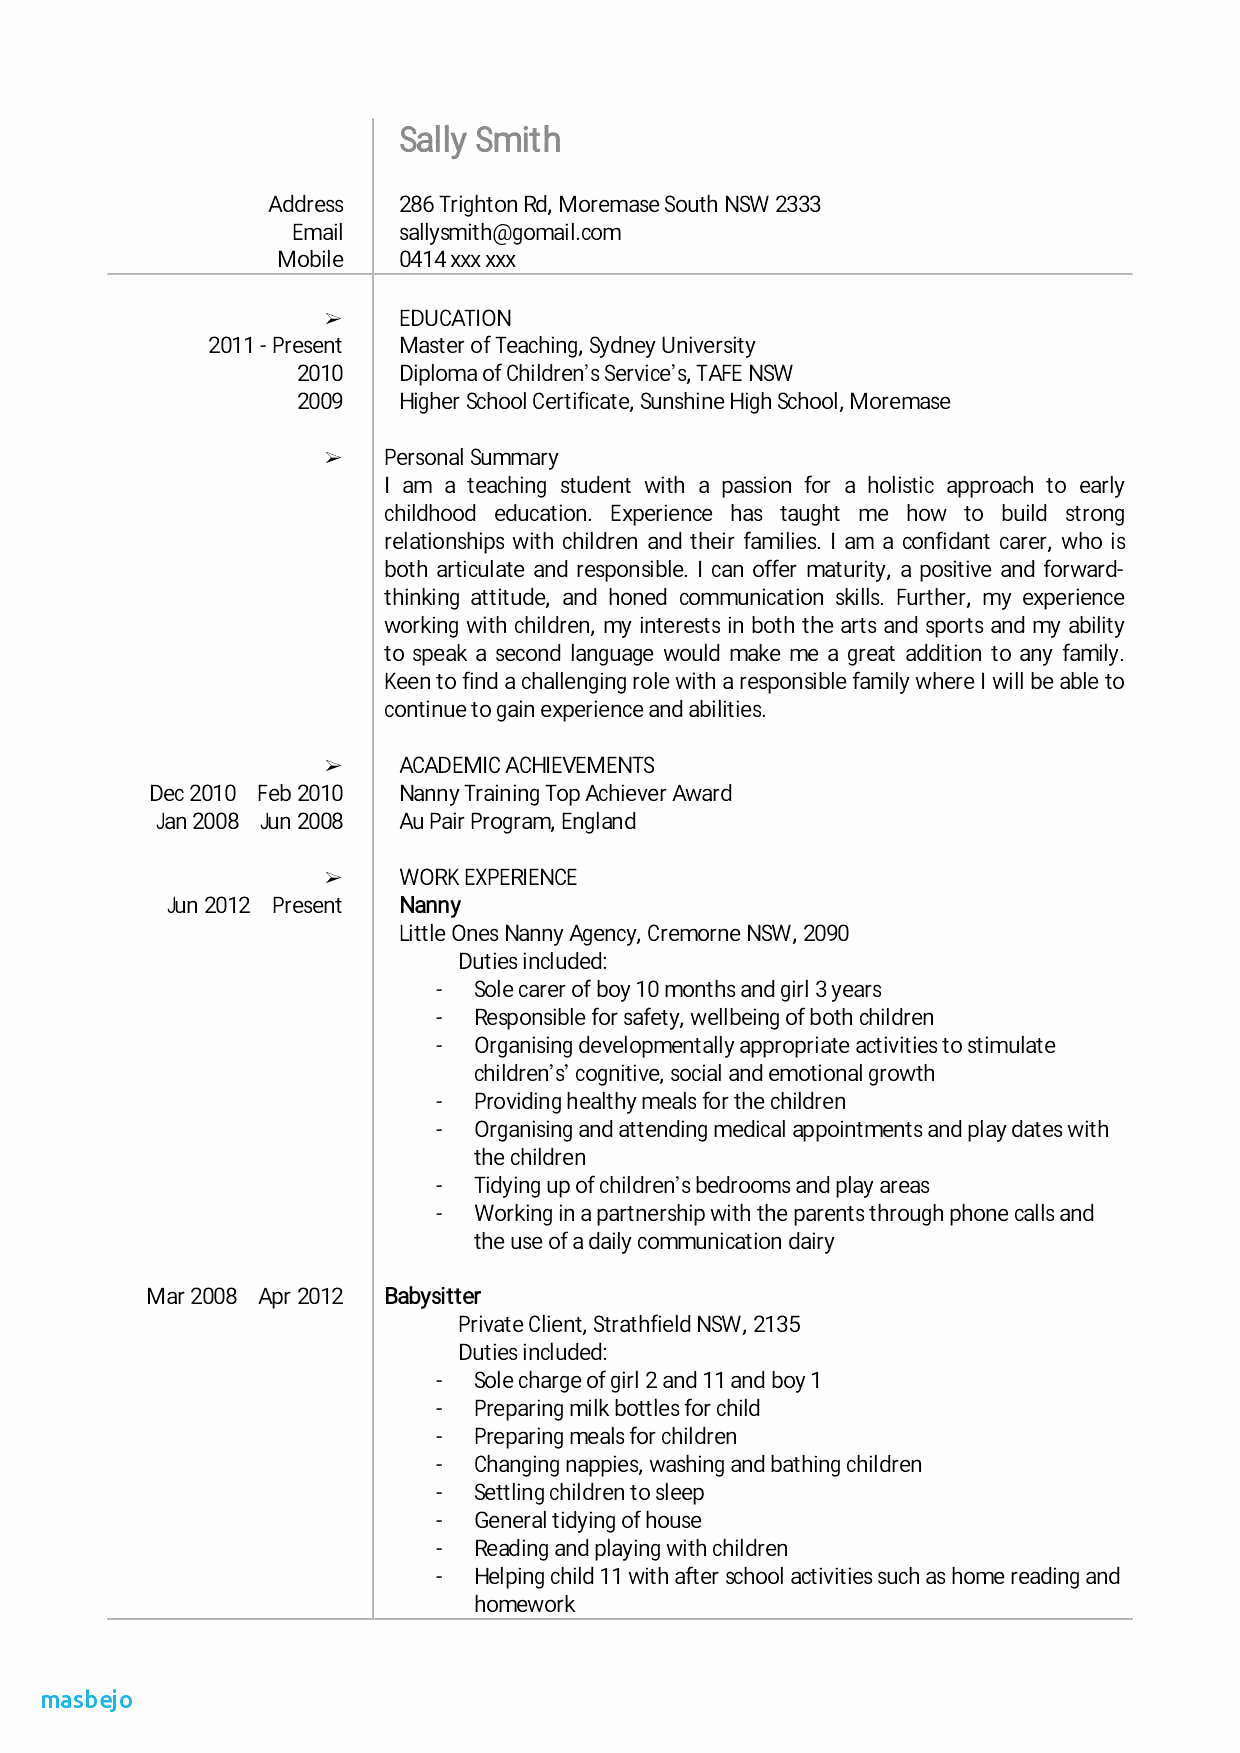 Babysitters Resume Template - Resume for Baby Sitting Babysitting Resume Examples Babysitter